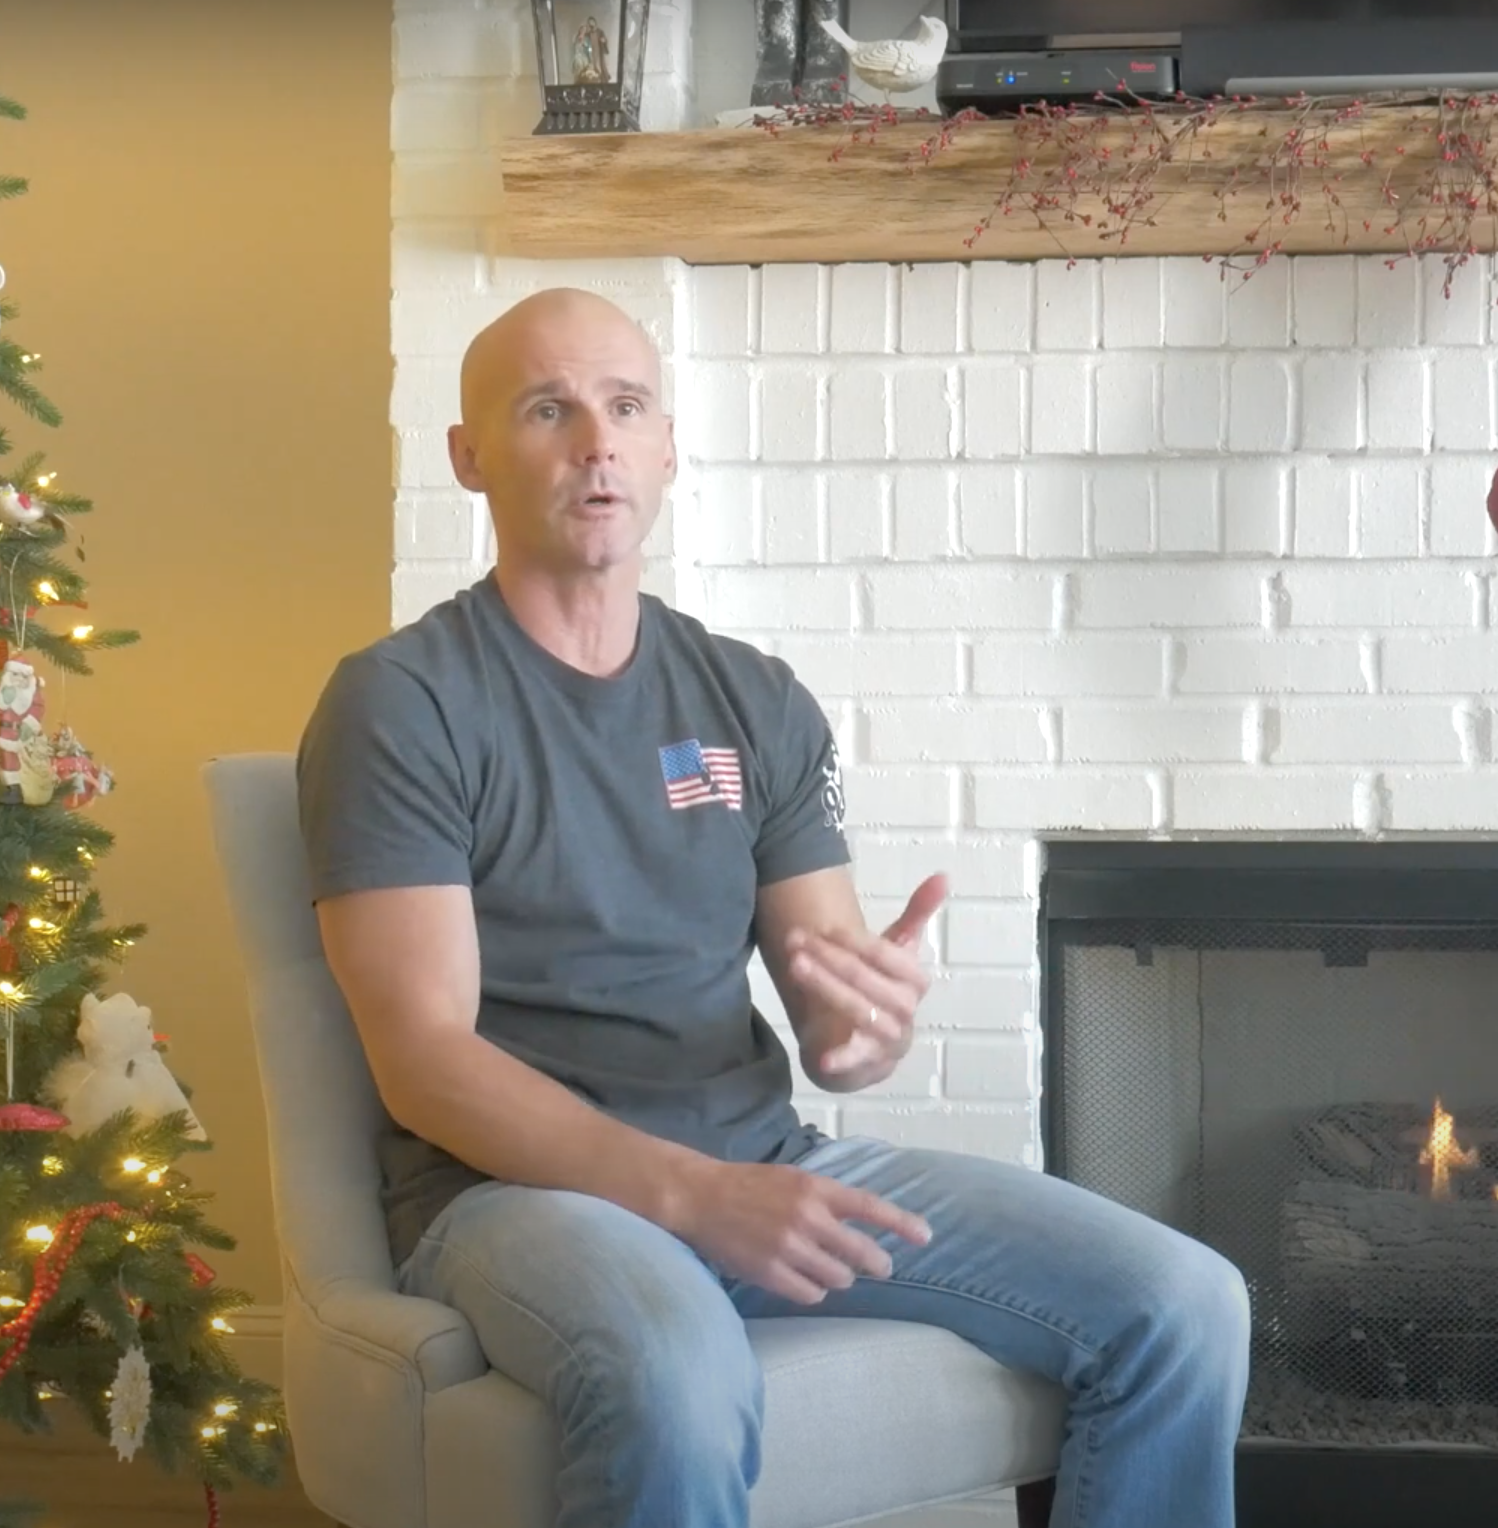 Fireside Chat 5: The #1 Exercise/Workout